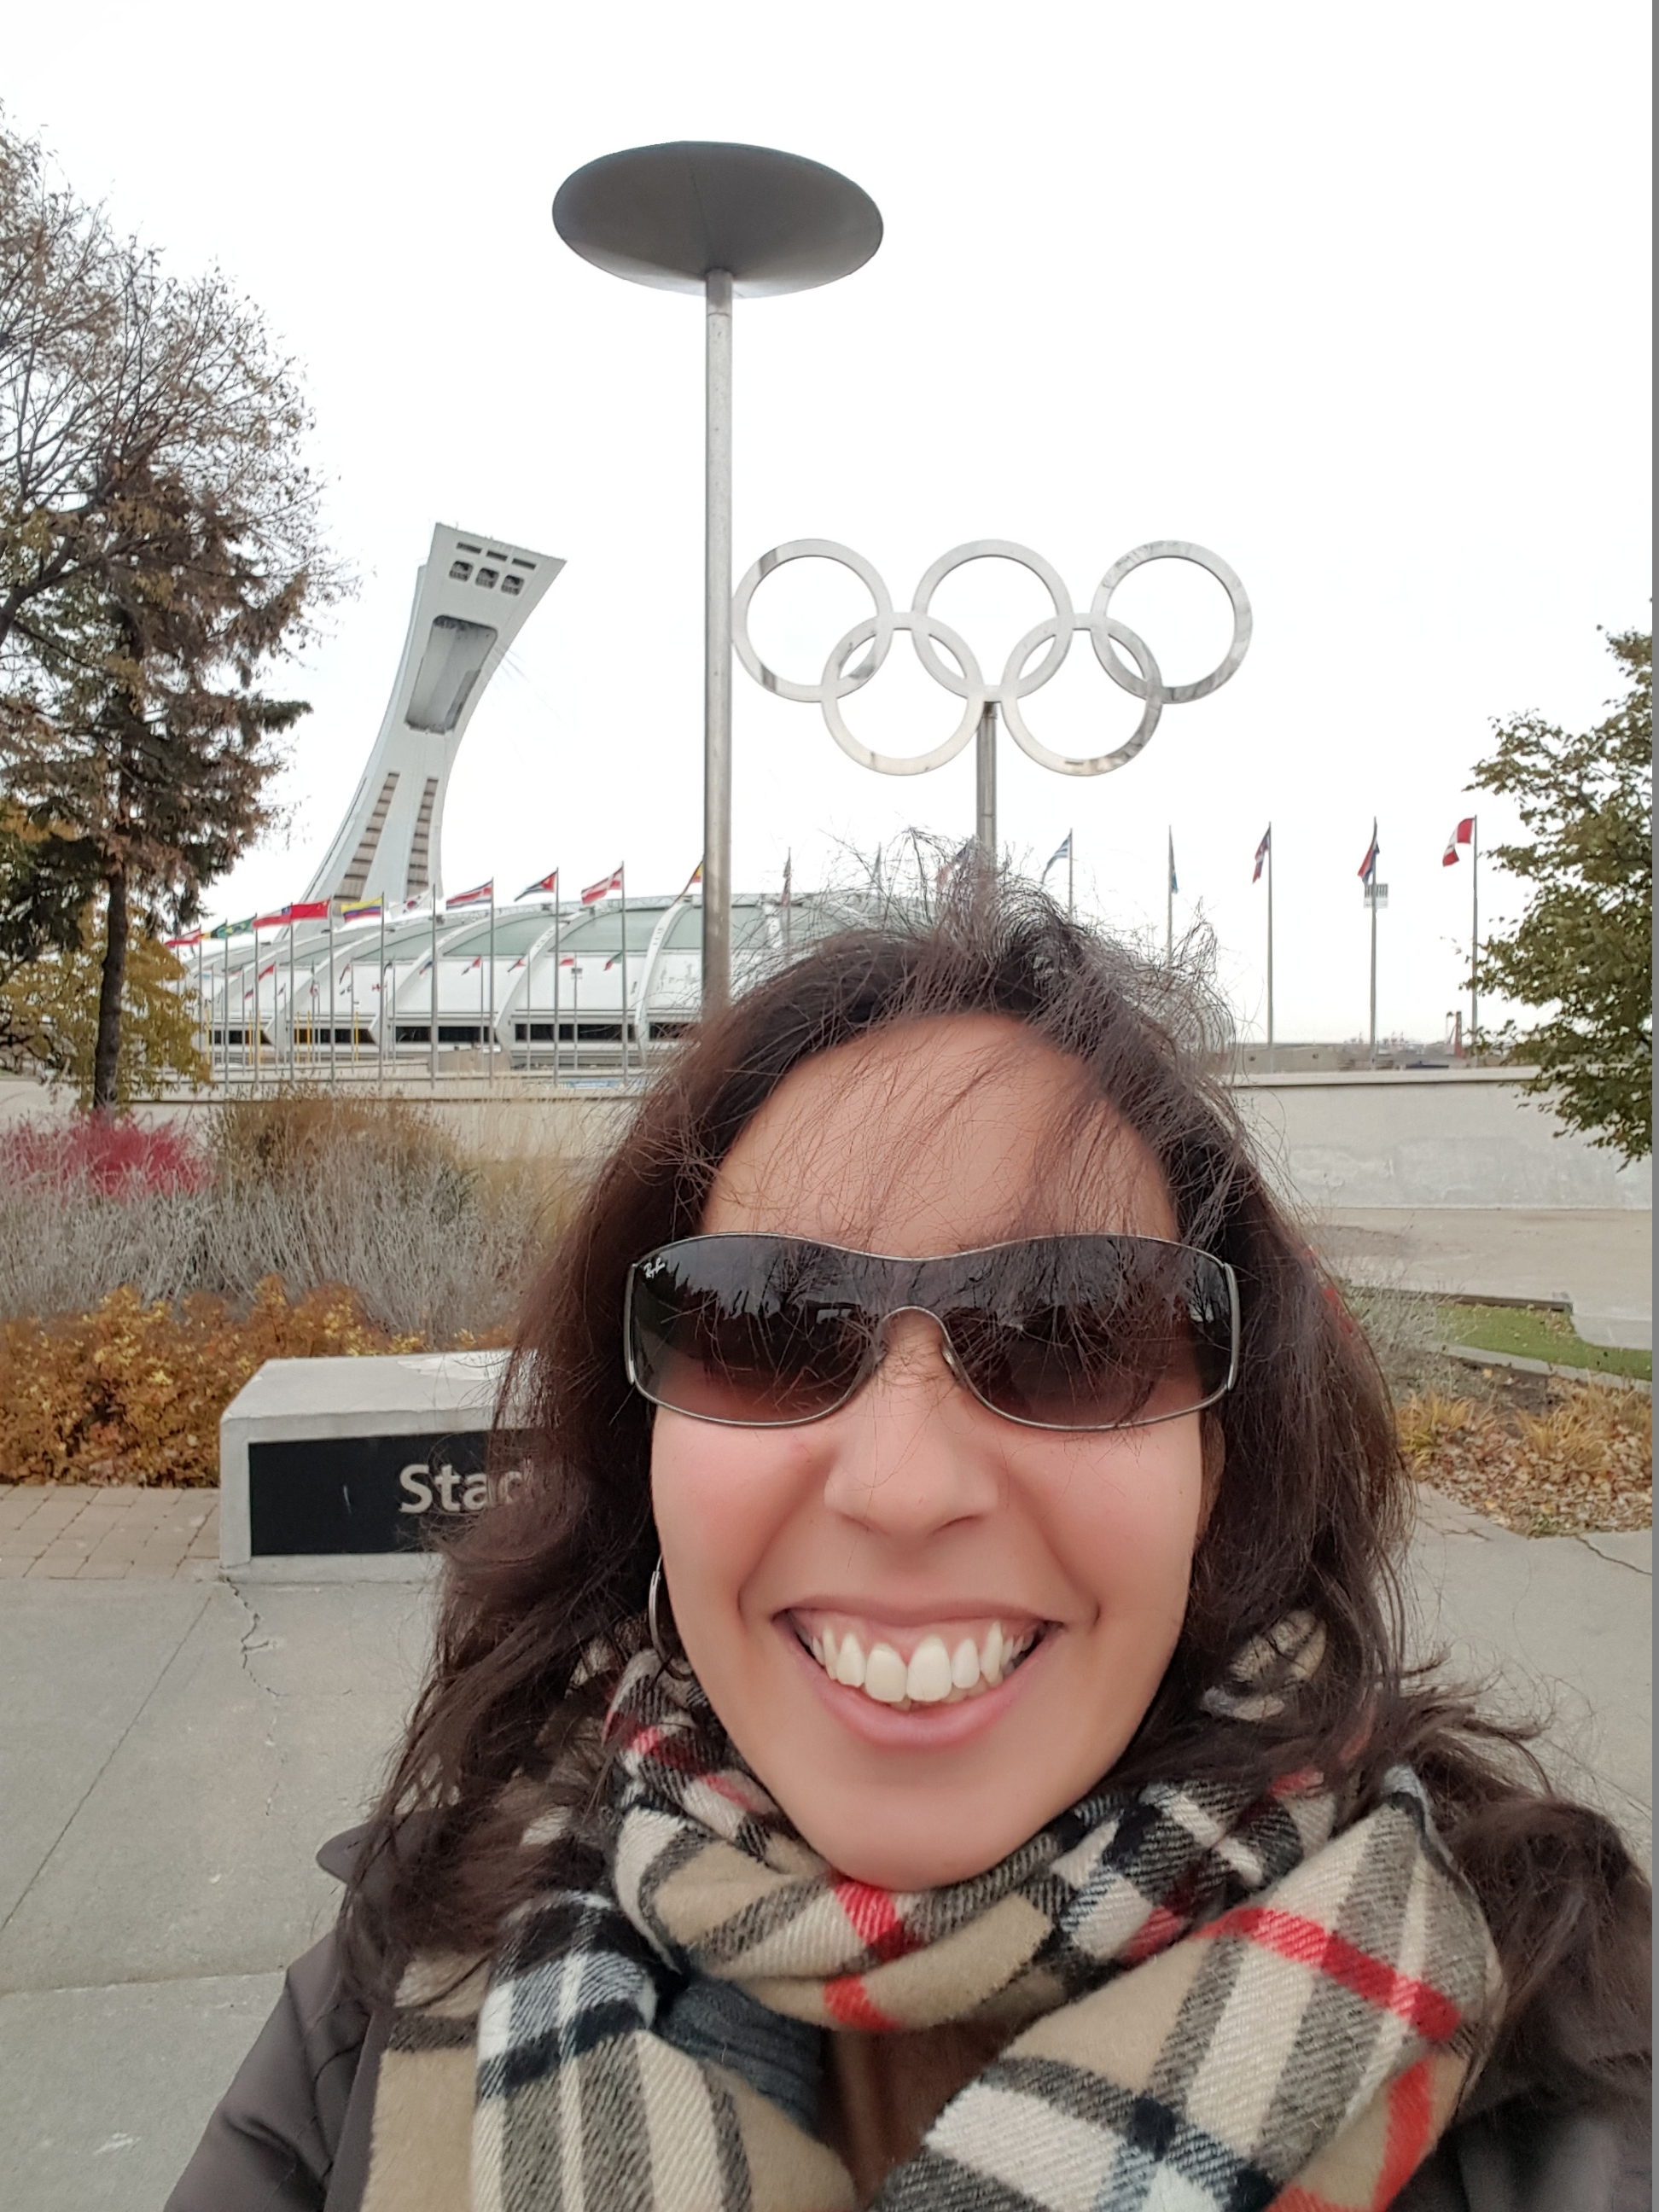 The Olympic symbol behind me is amazing.